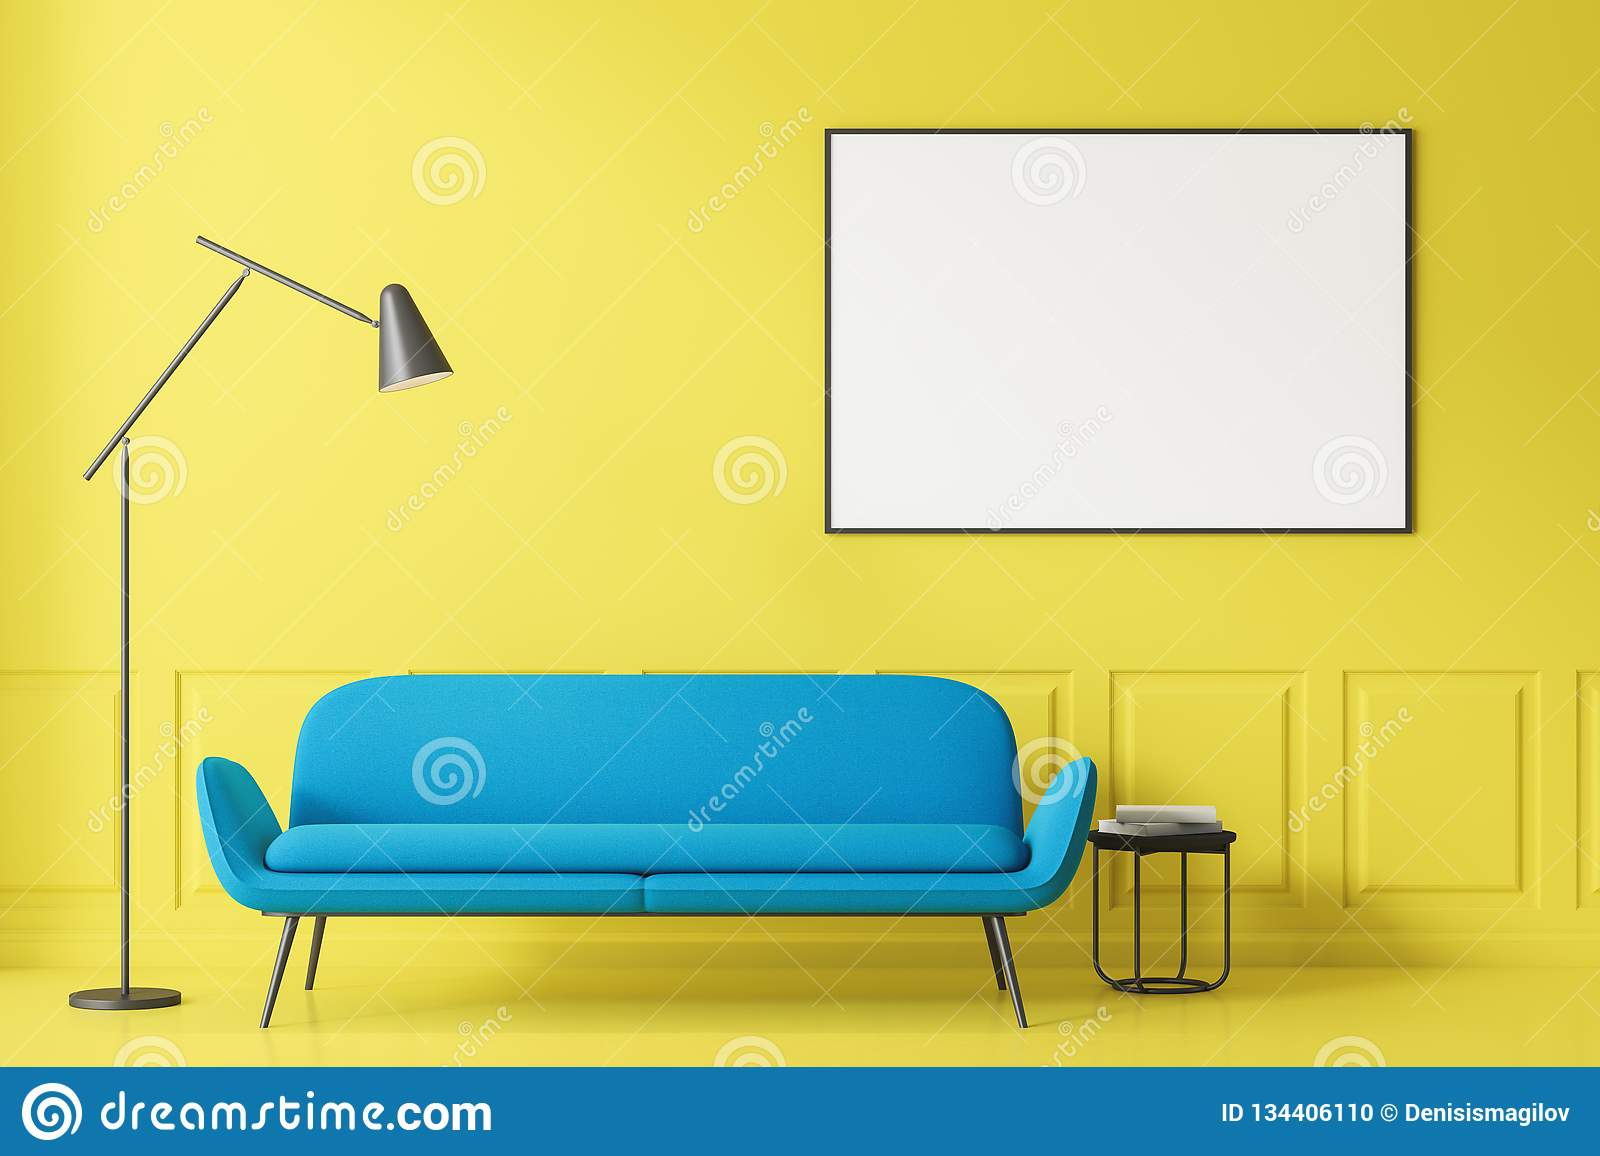 Yellow Living Room Blue Sofa And Poster Stock Illustration Illustration Of Floor Minimal 134406110